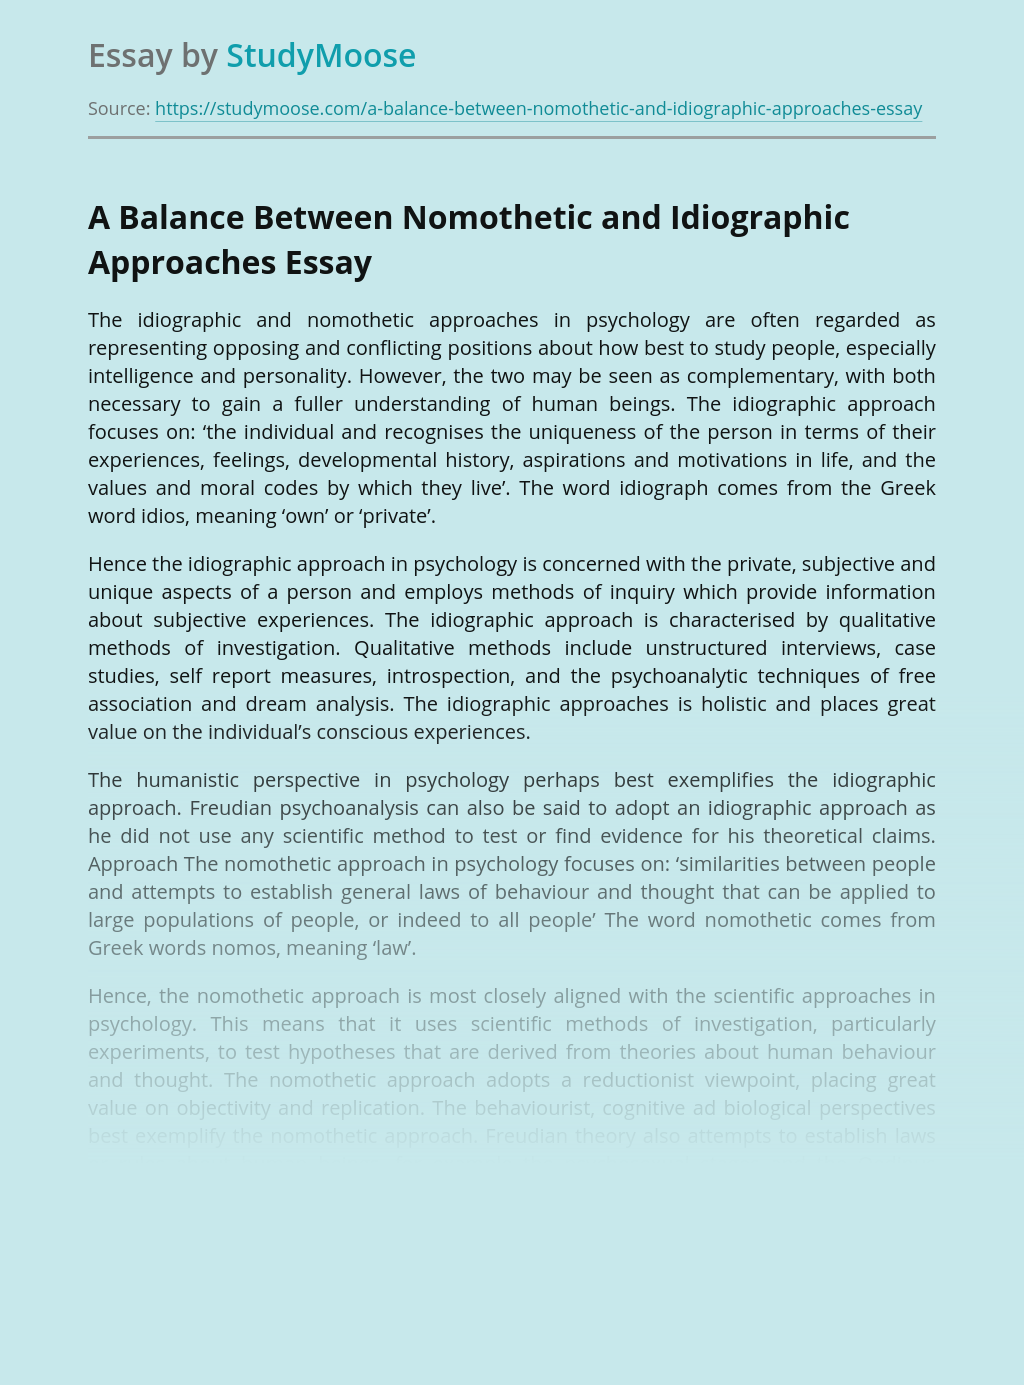 A Balance Between Nomothetic and Idiographic Approaches